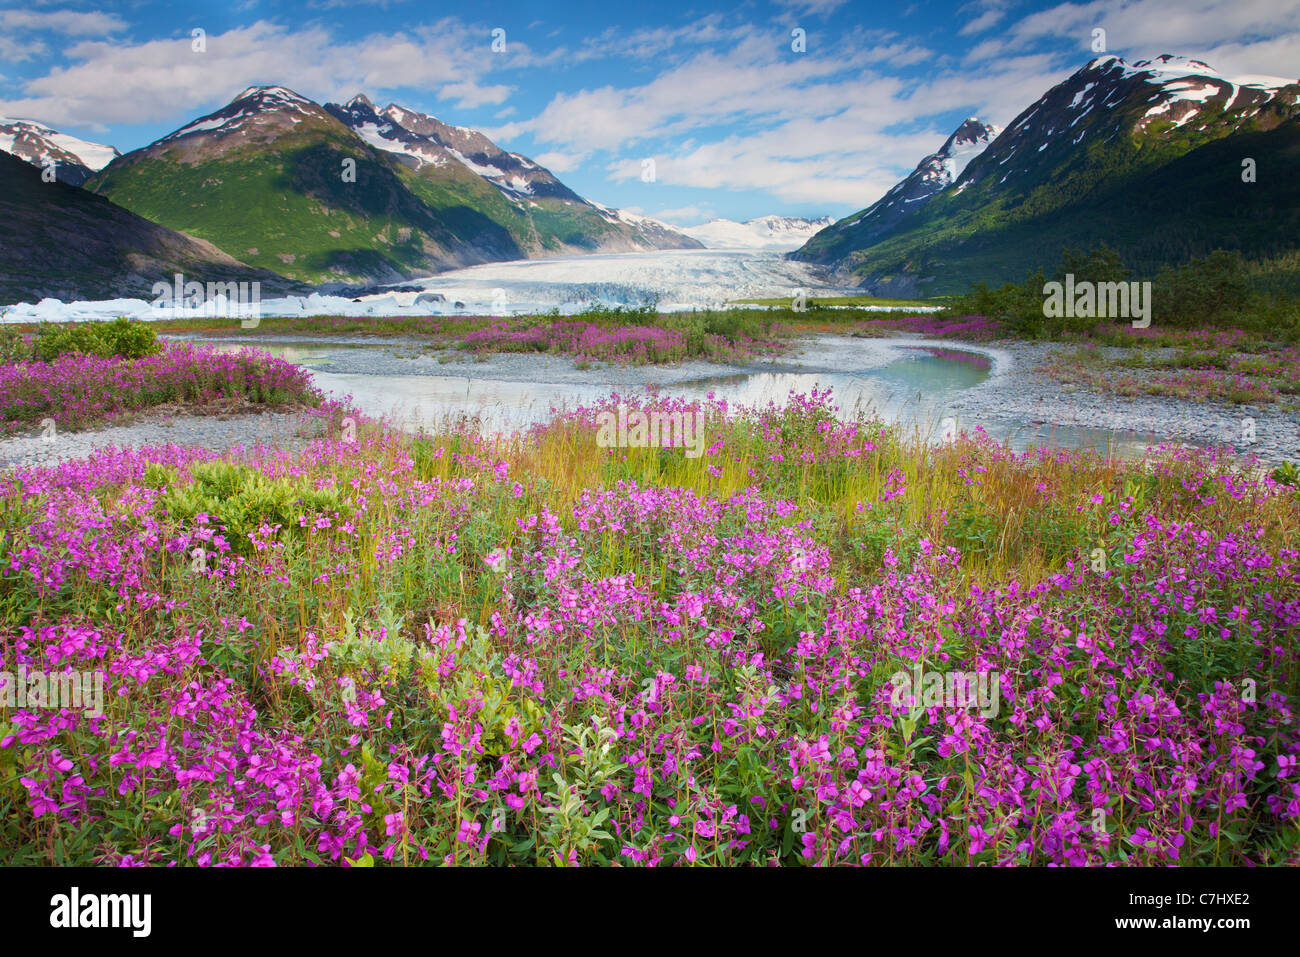 Wildblumen am Spencer Gletscher, Chugach National Forest, Alaska. Stockbild